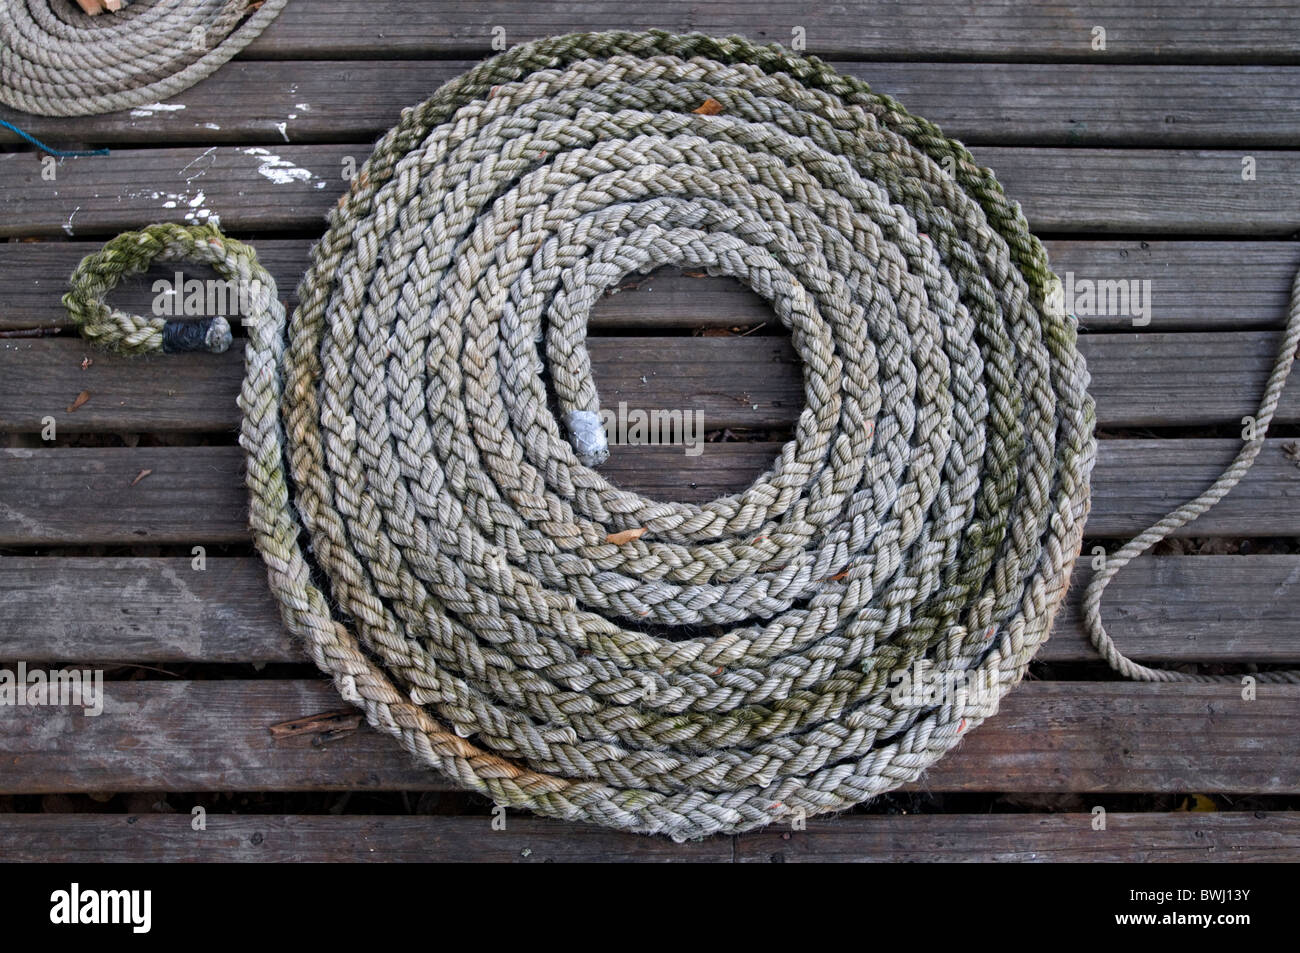 A coil of rope - Stock Image